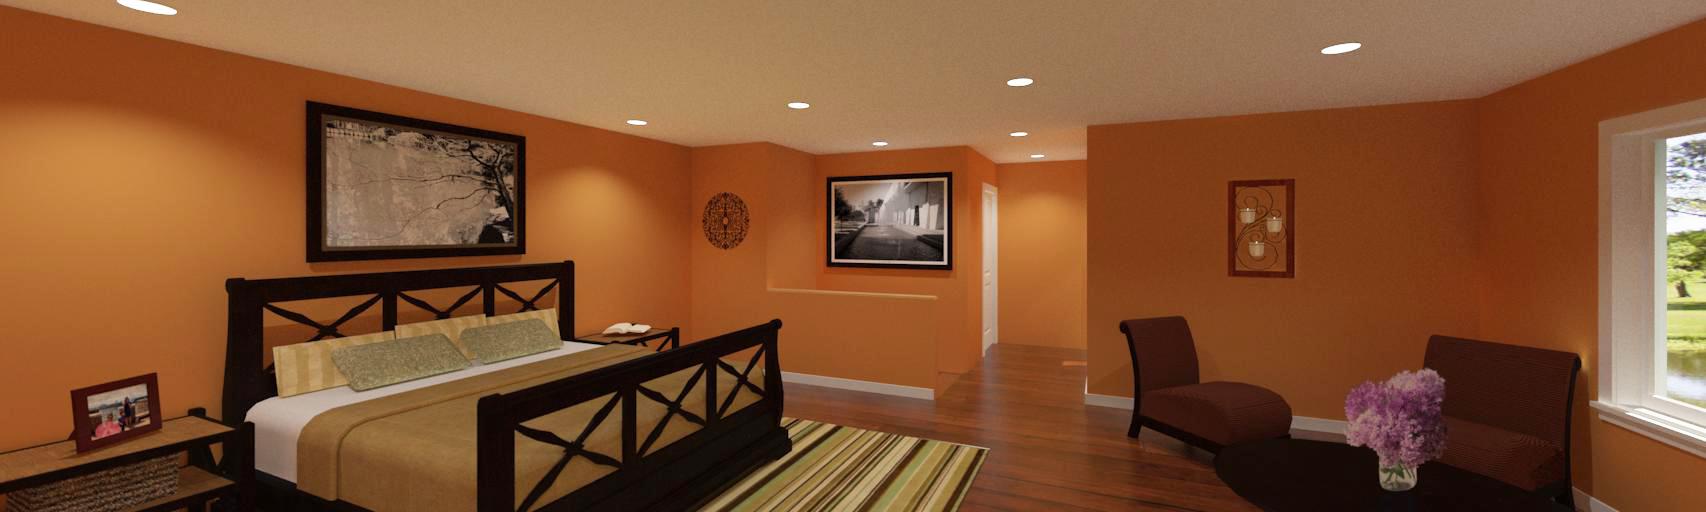 Home Renovation And Remodeling Home Design Consulting